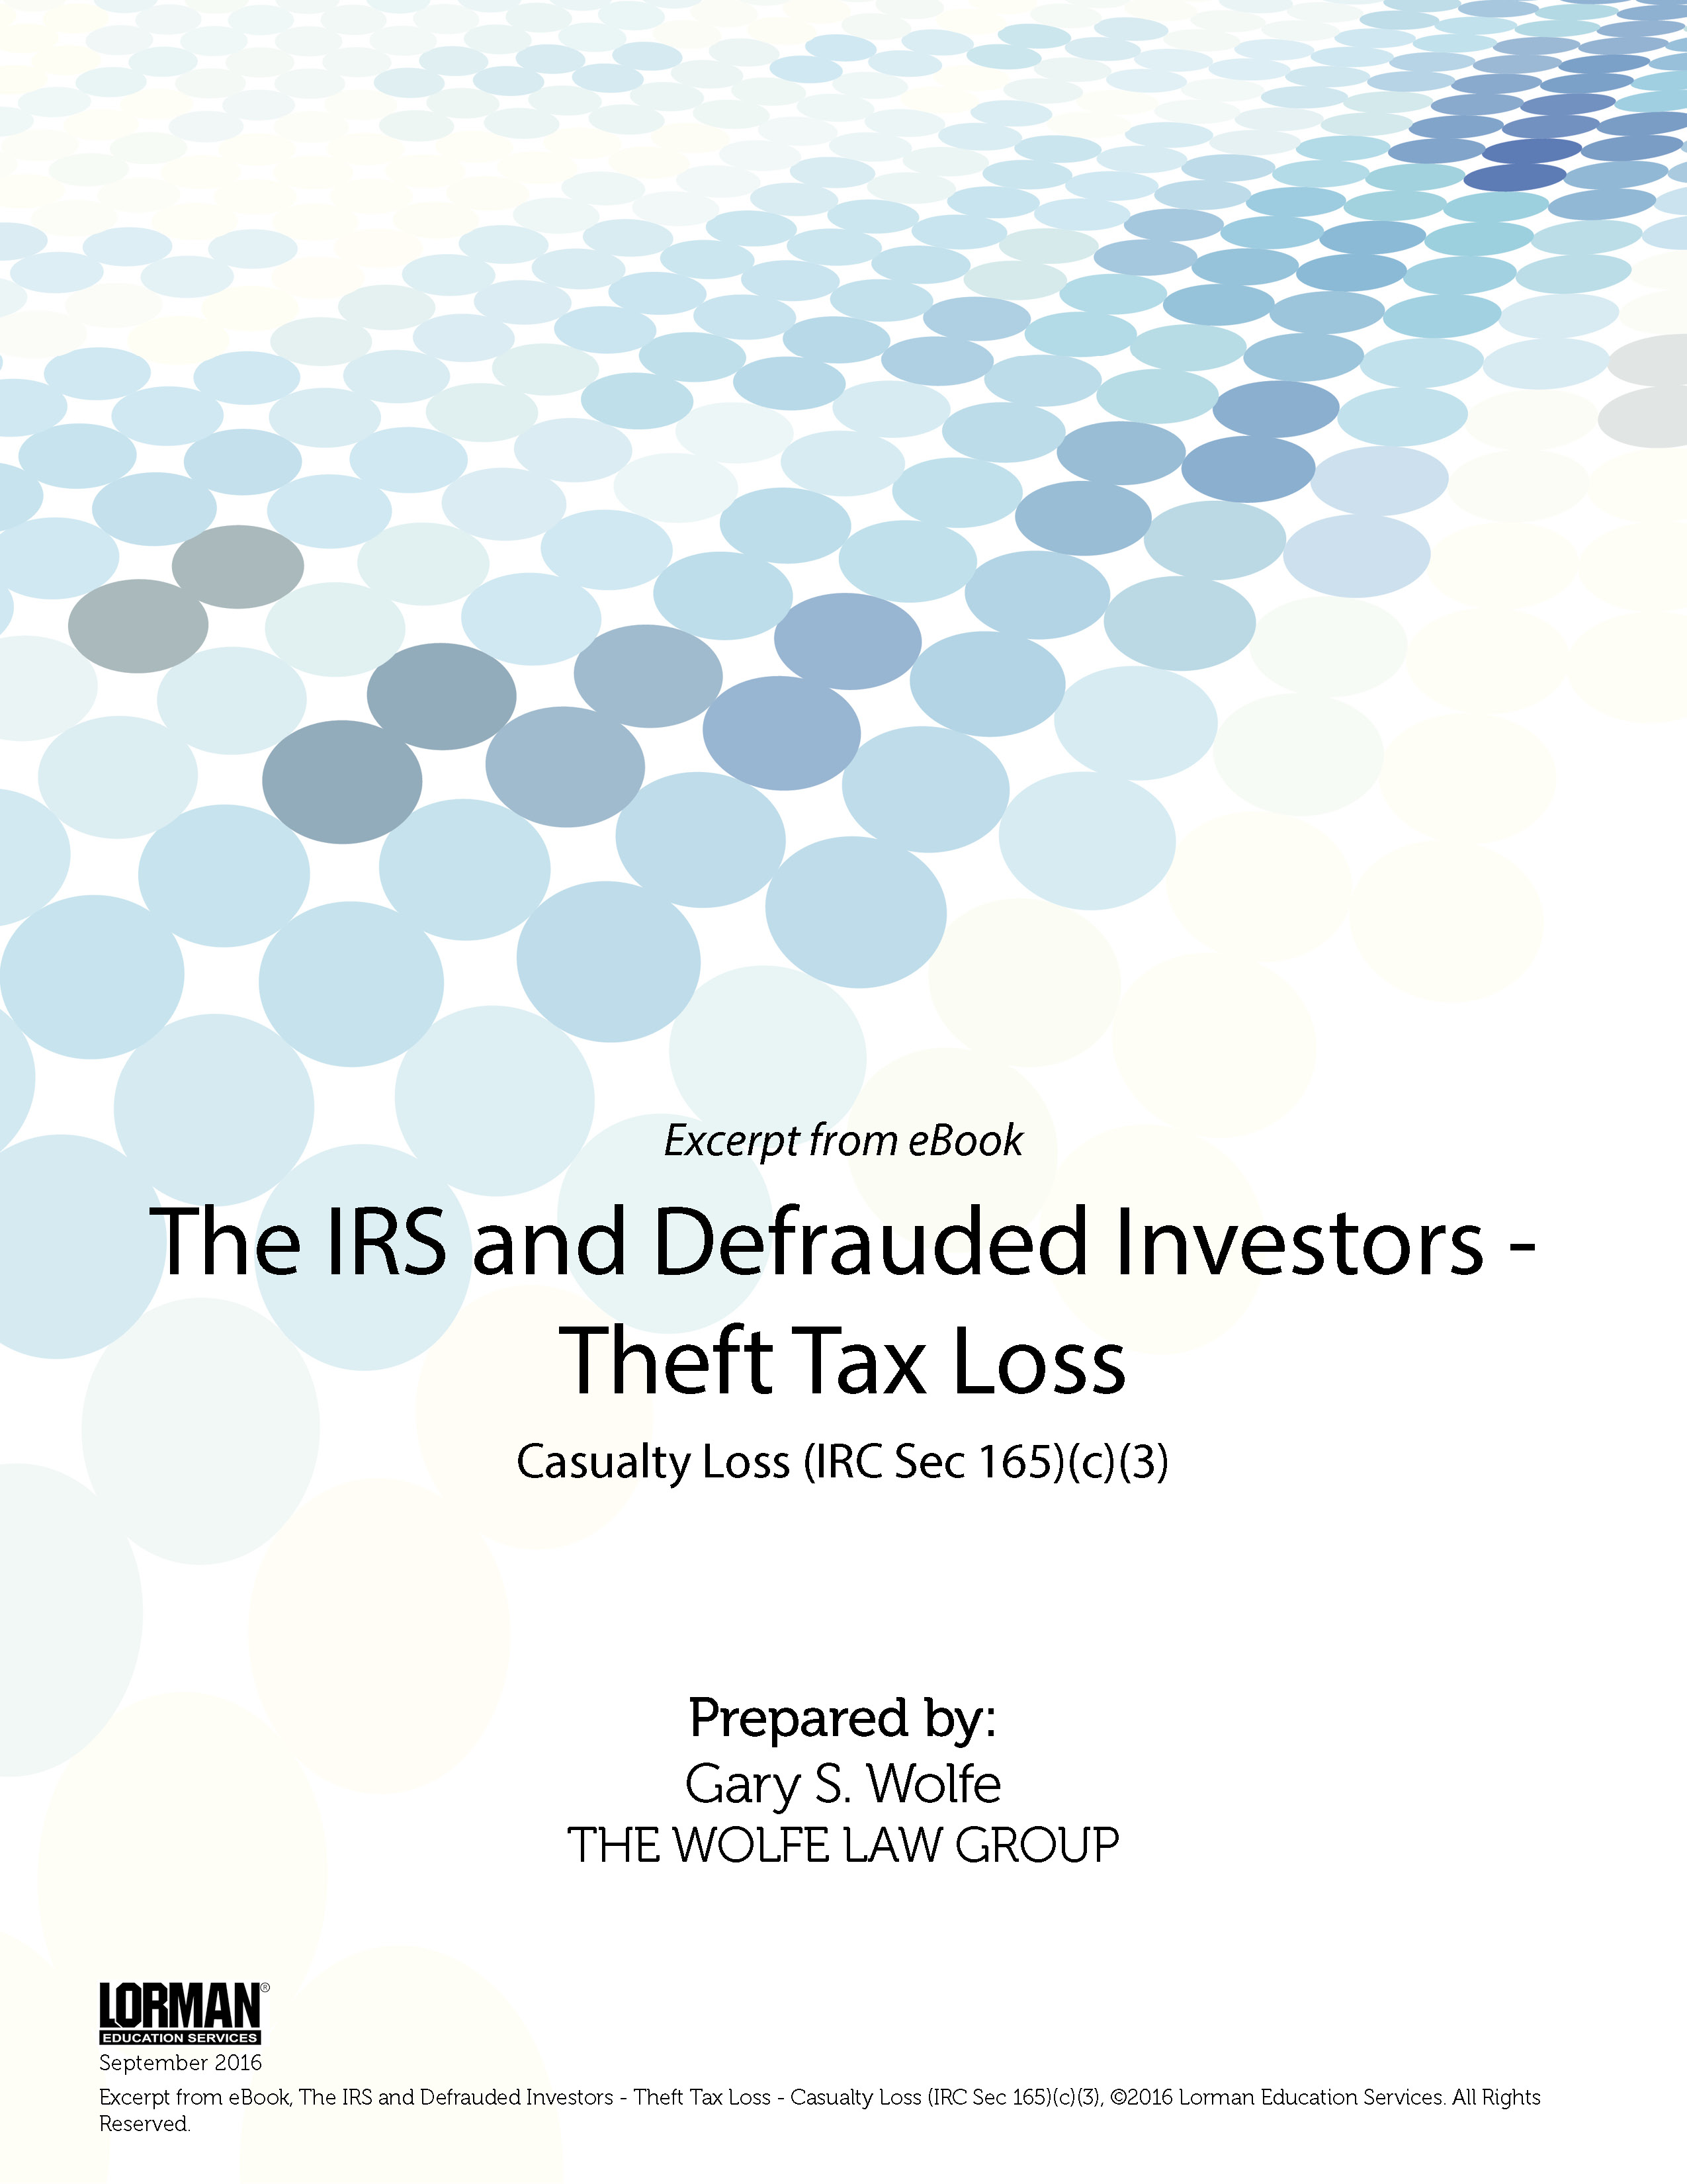 The IRS and Defrauded Investors: Theft Tax Loss - Casualty Loss (IRC Sec 165)(c)(3)